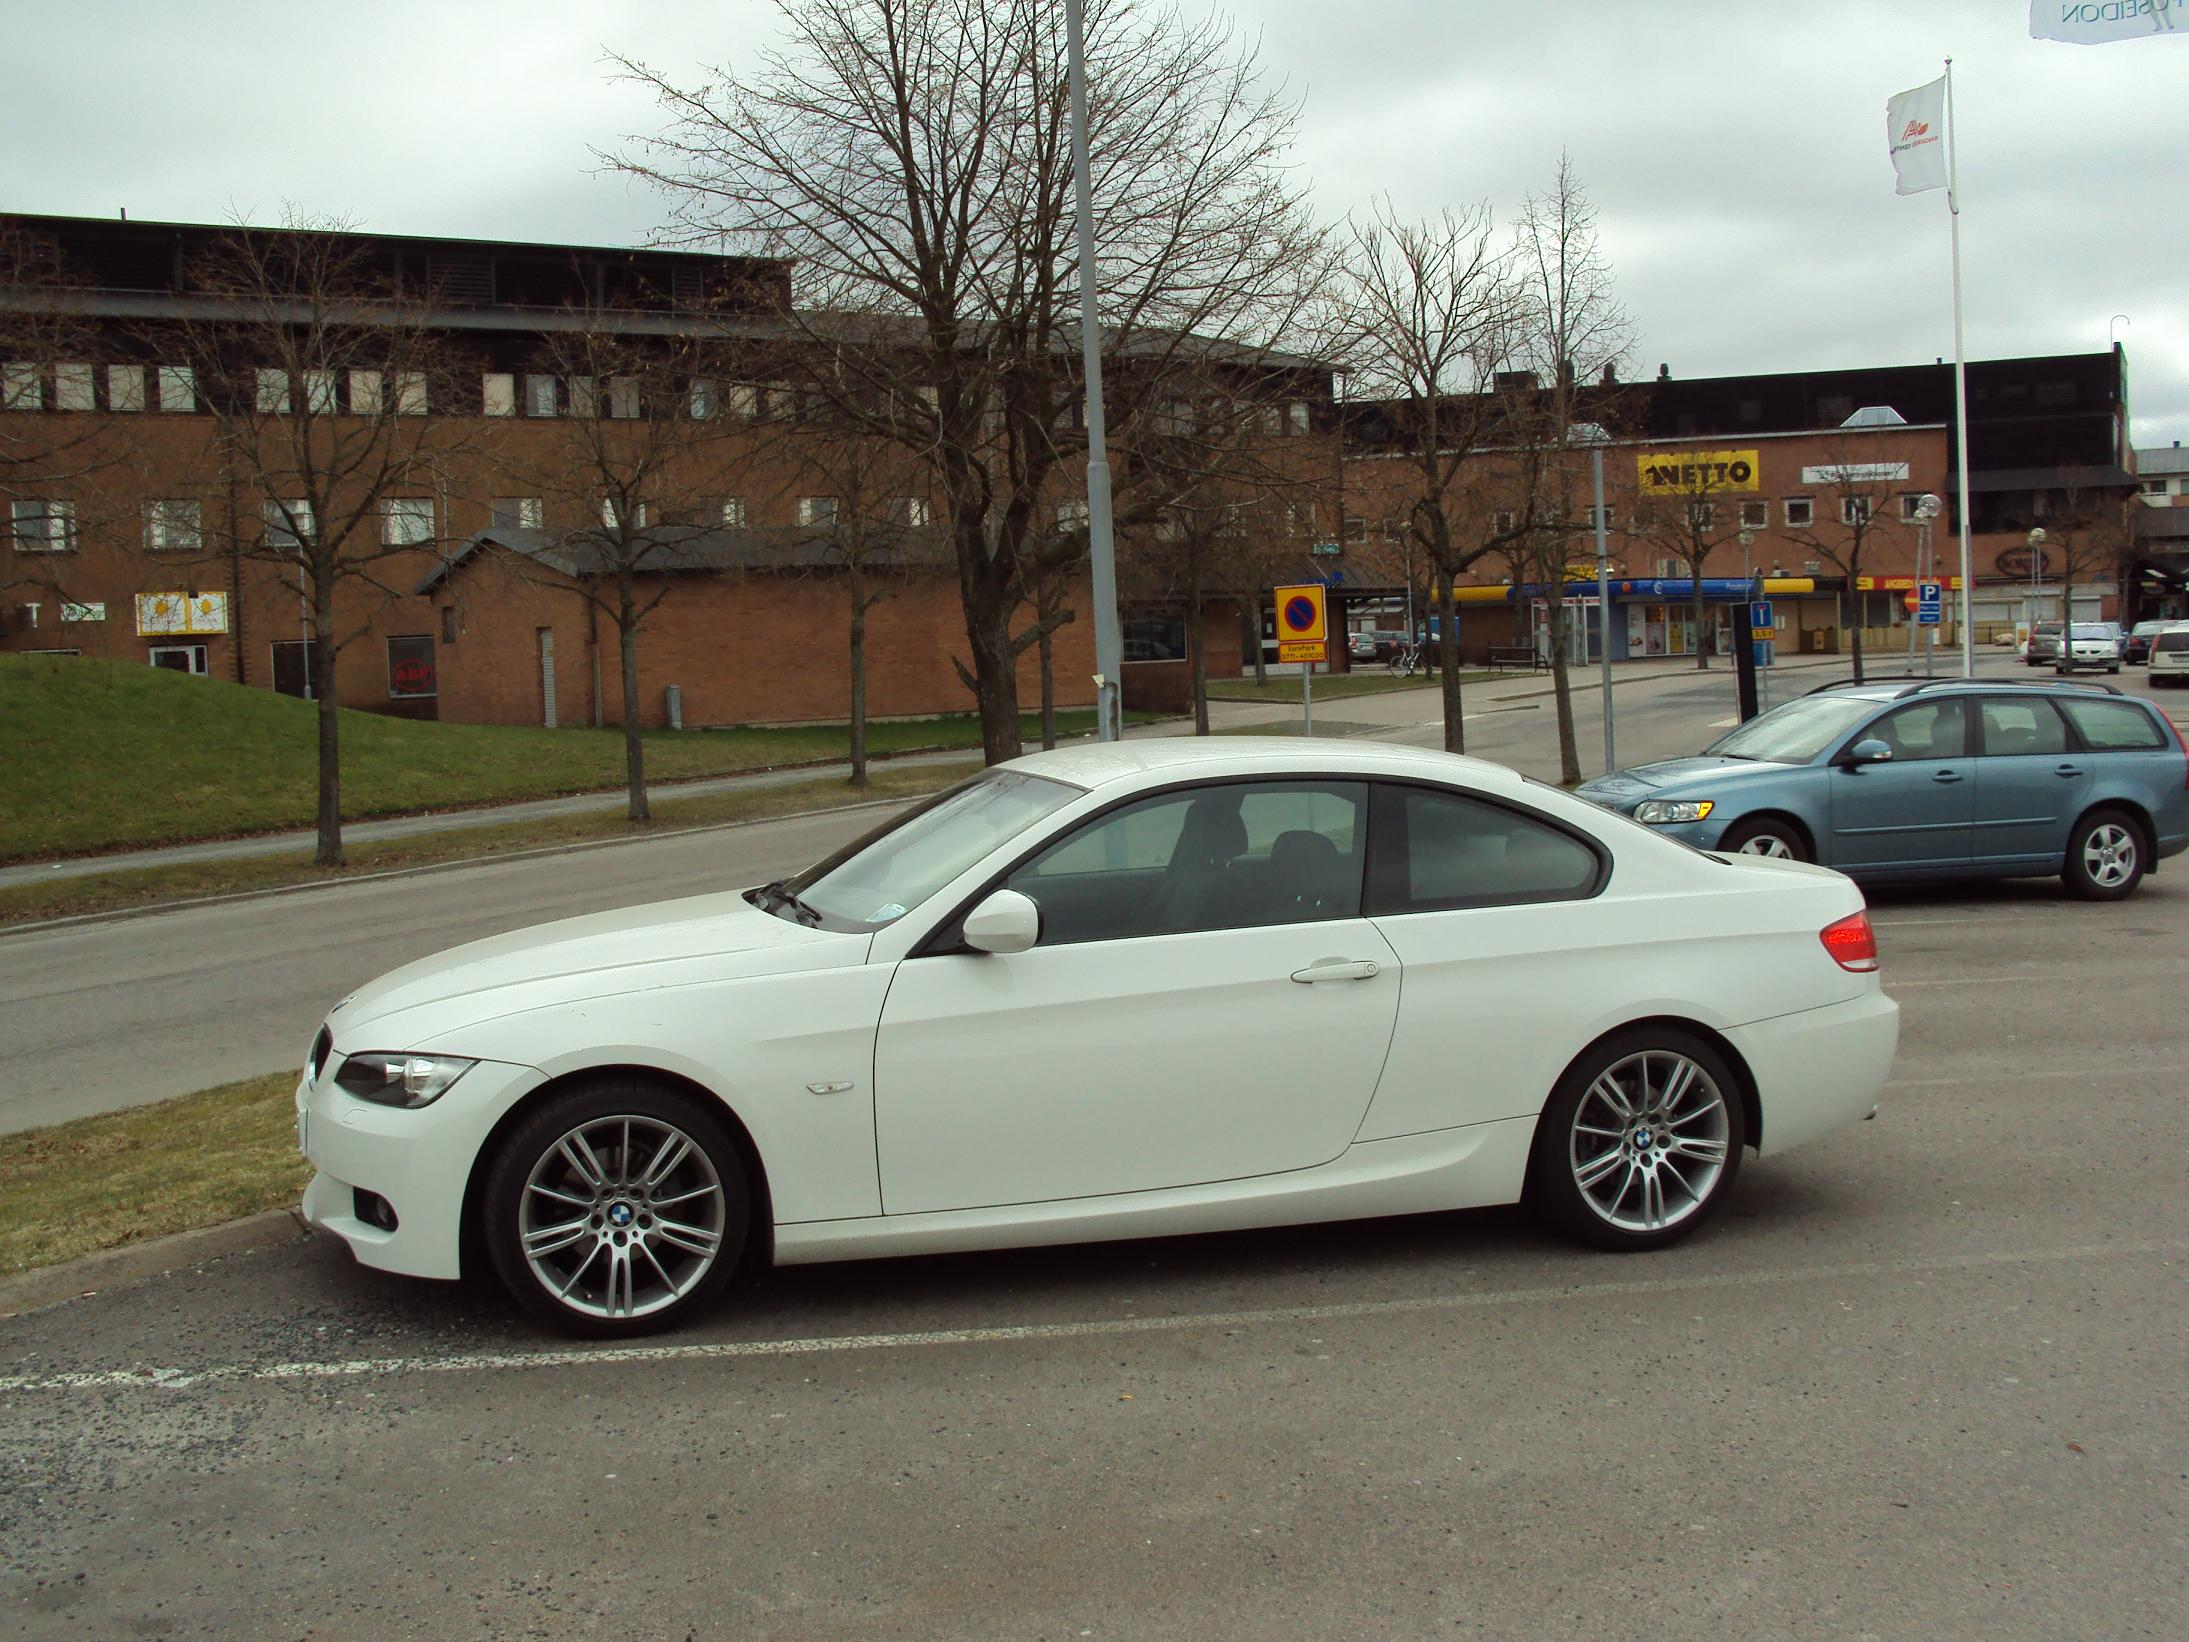 BMW 320i Coupé M Sport | Flickr - Photo Sharing!